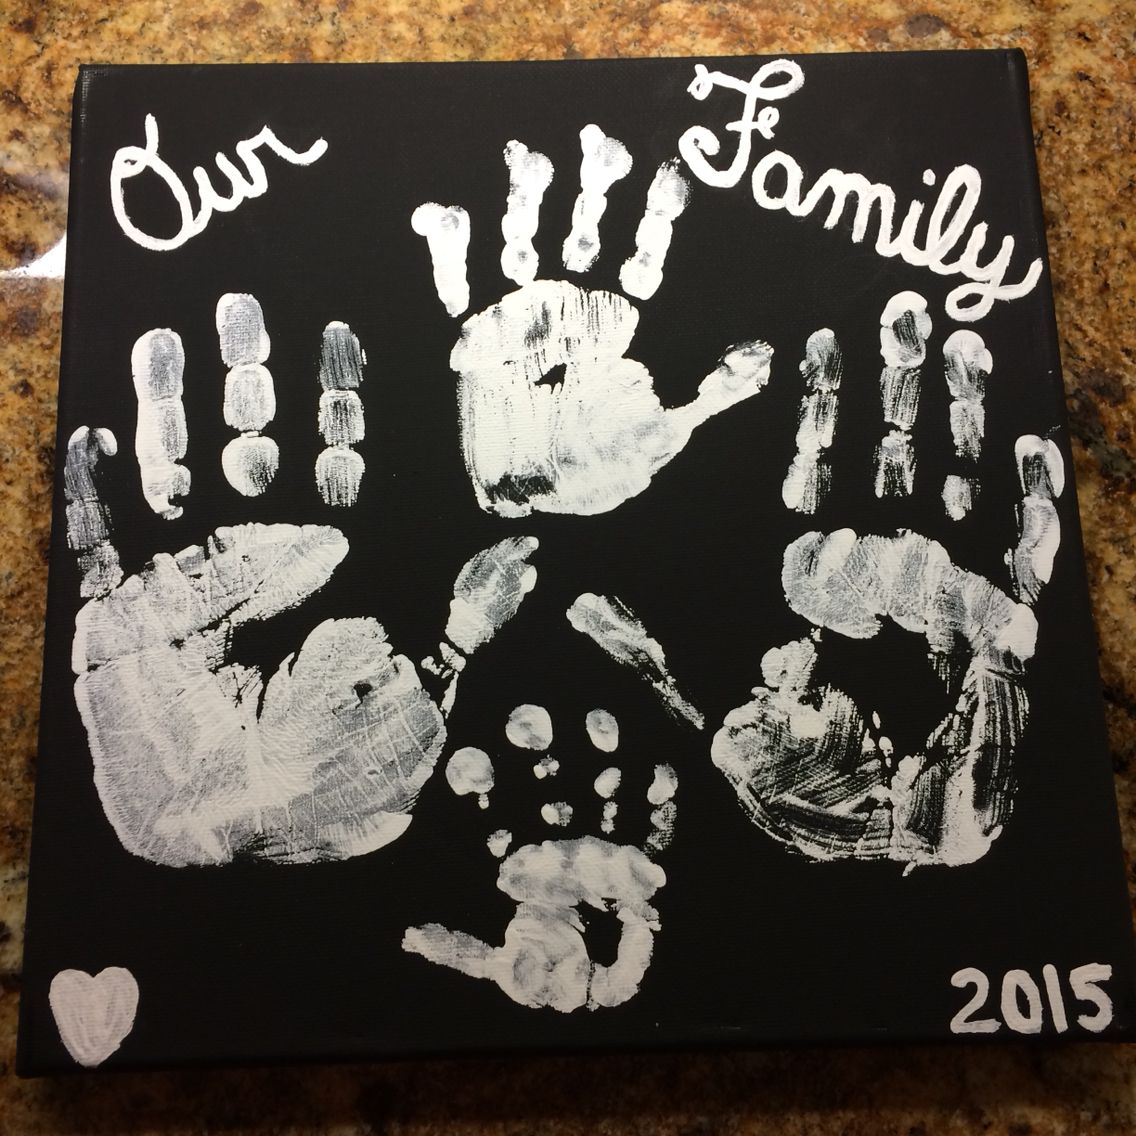 Family handprints white acrylic paint on black canvas for the